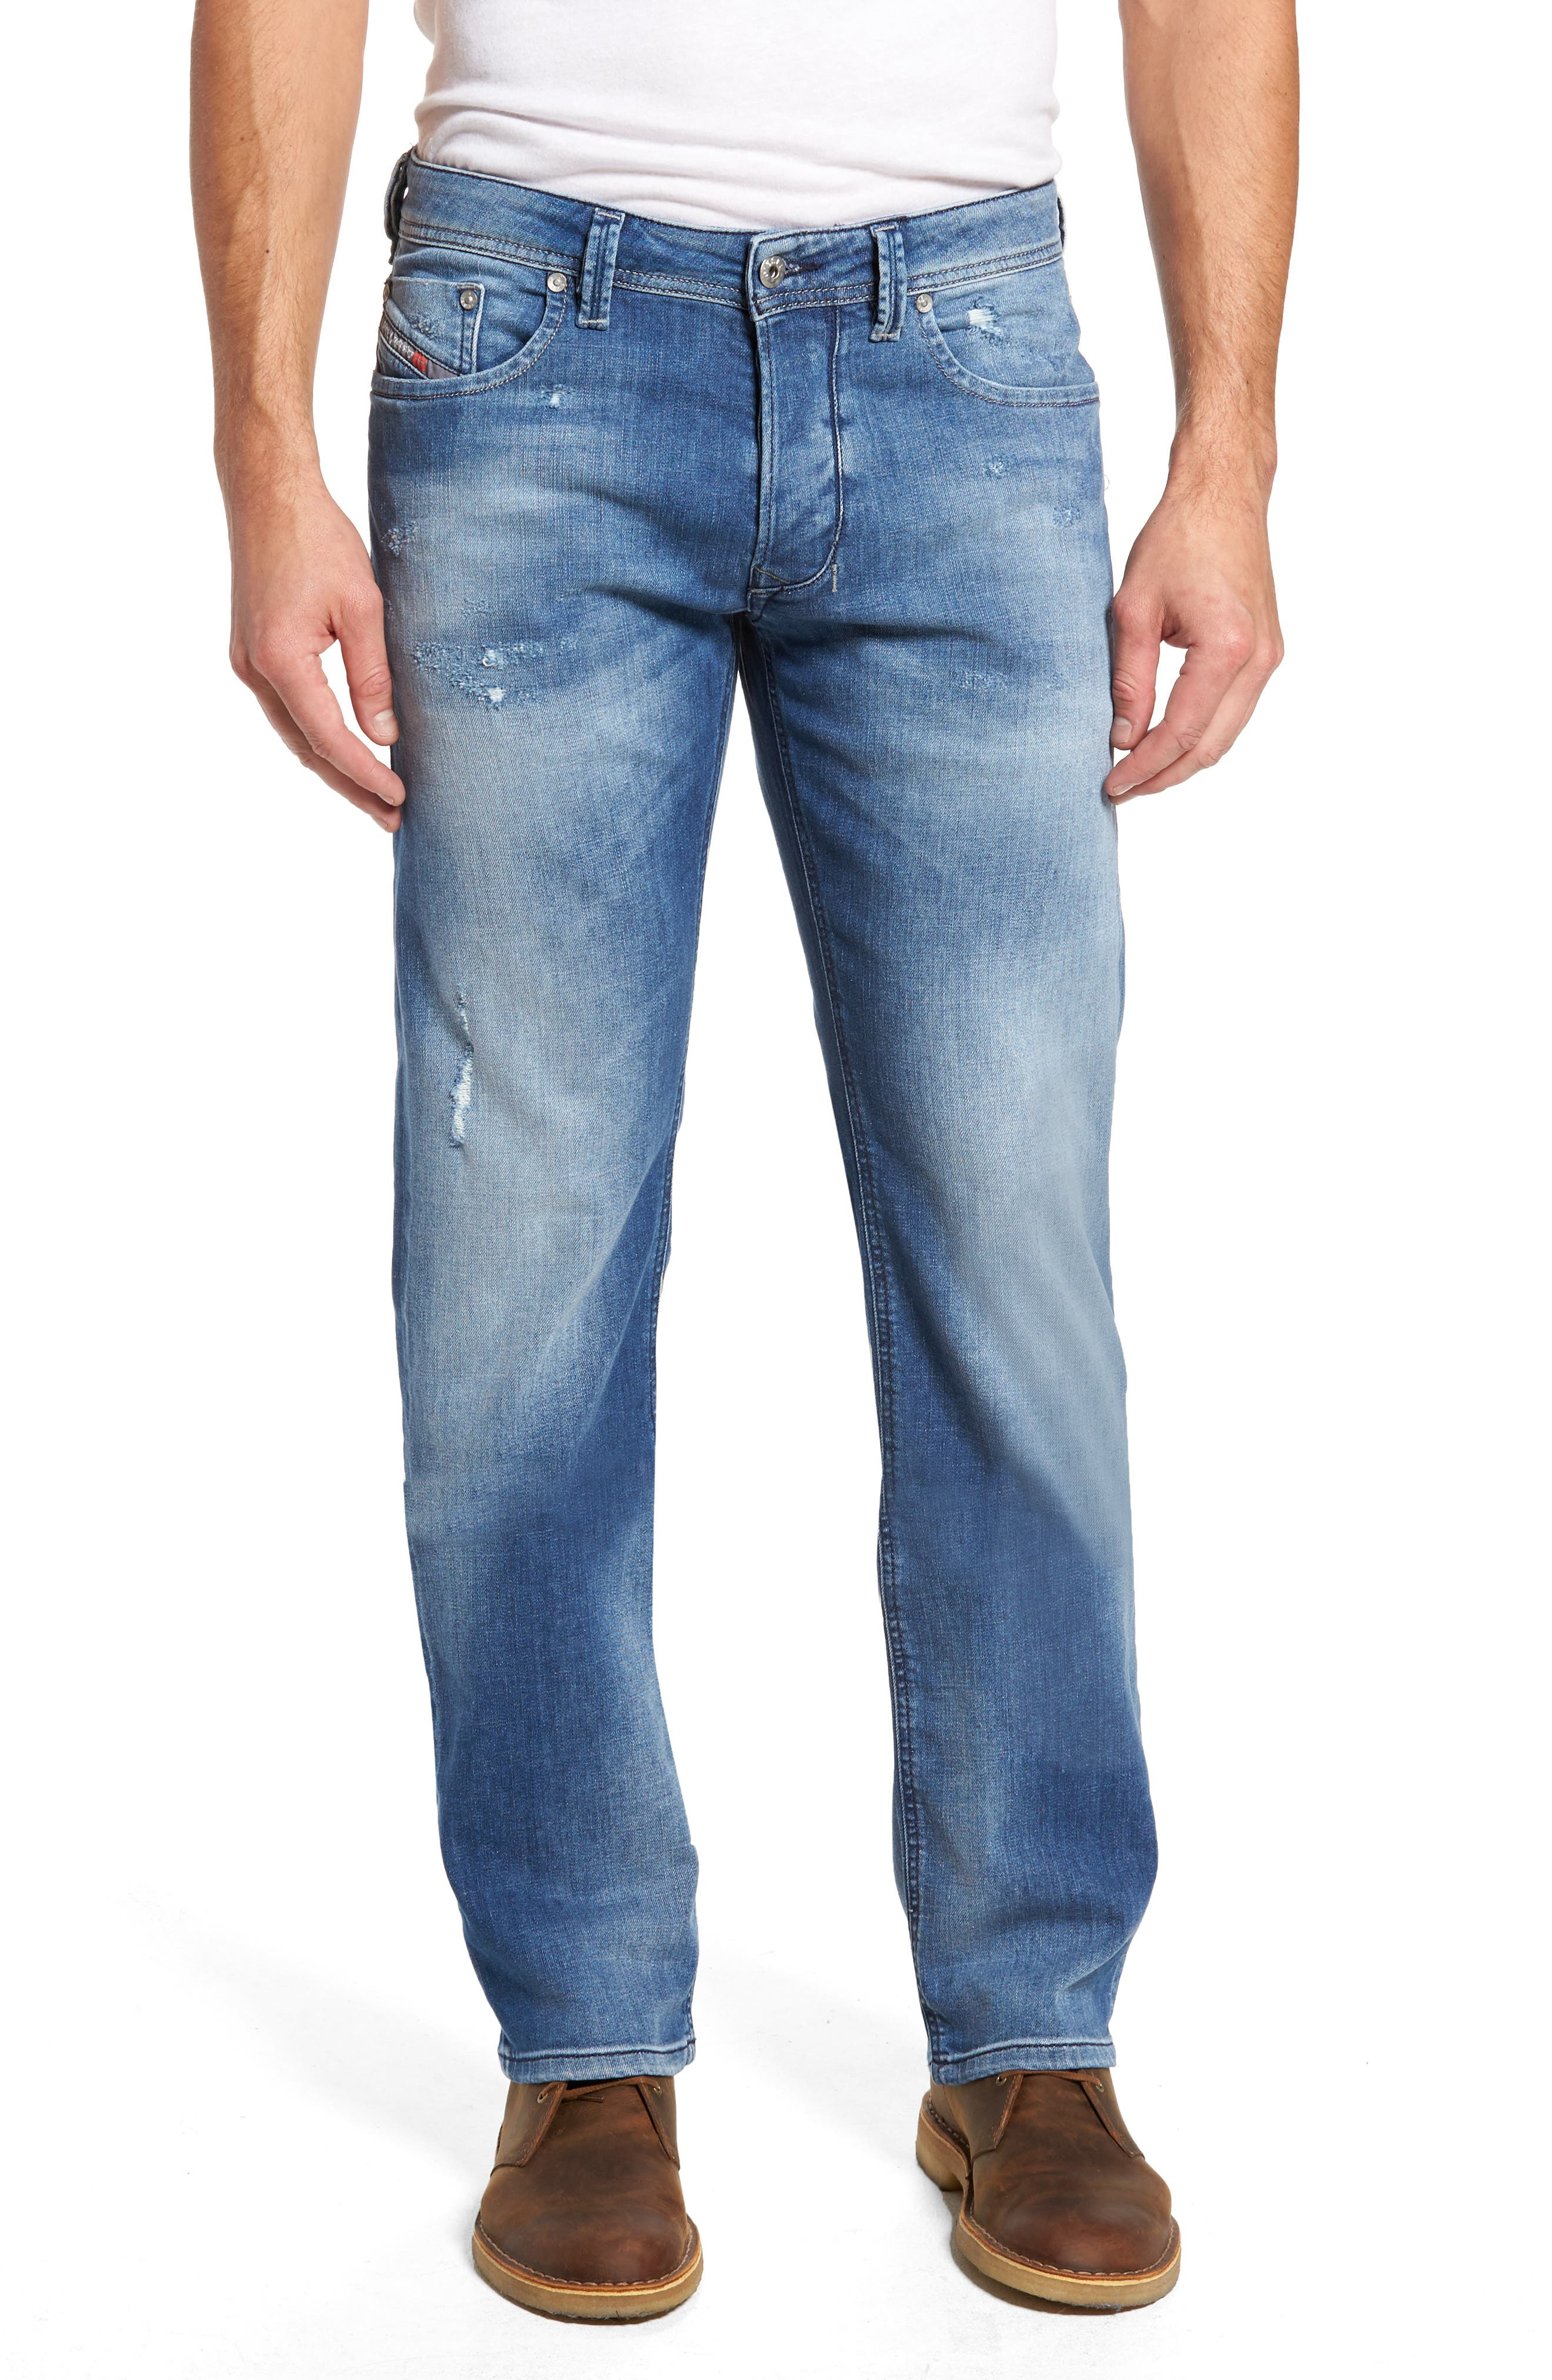 Larkee Relaxed Fit Jeans,                             Main thumbnail 1, color,                             084Qg